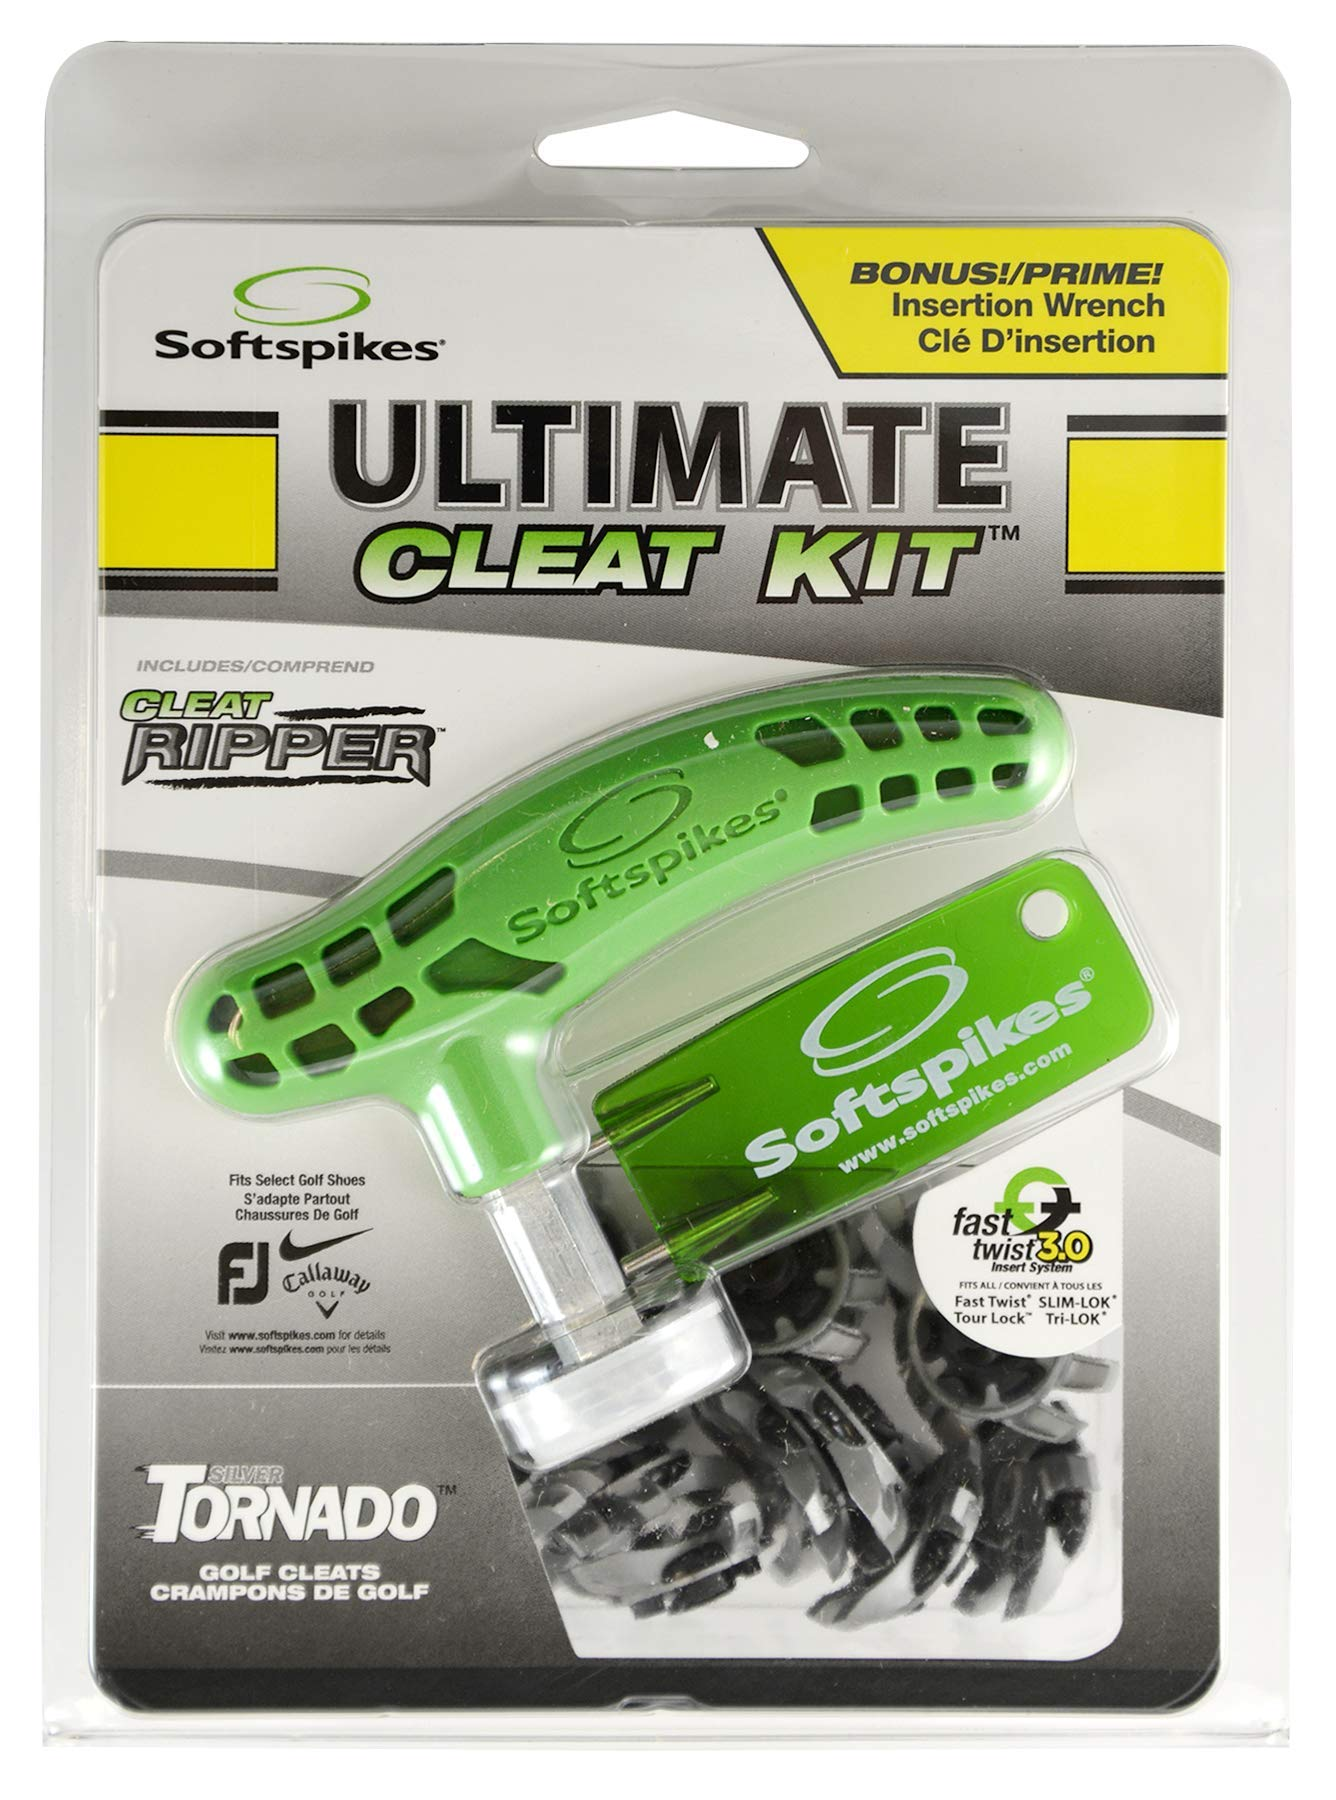 Softspikes Ultimate Cleat Kit by PrideSports